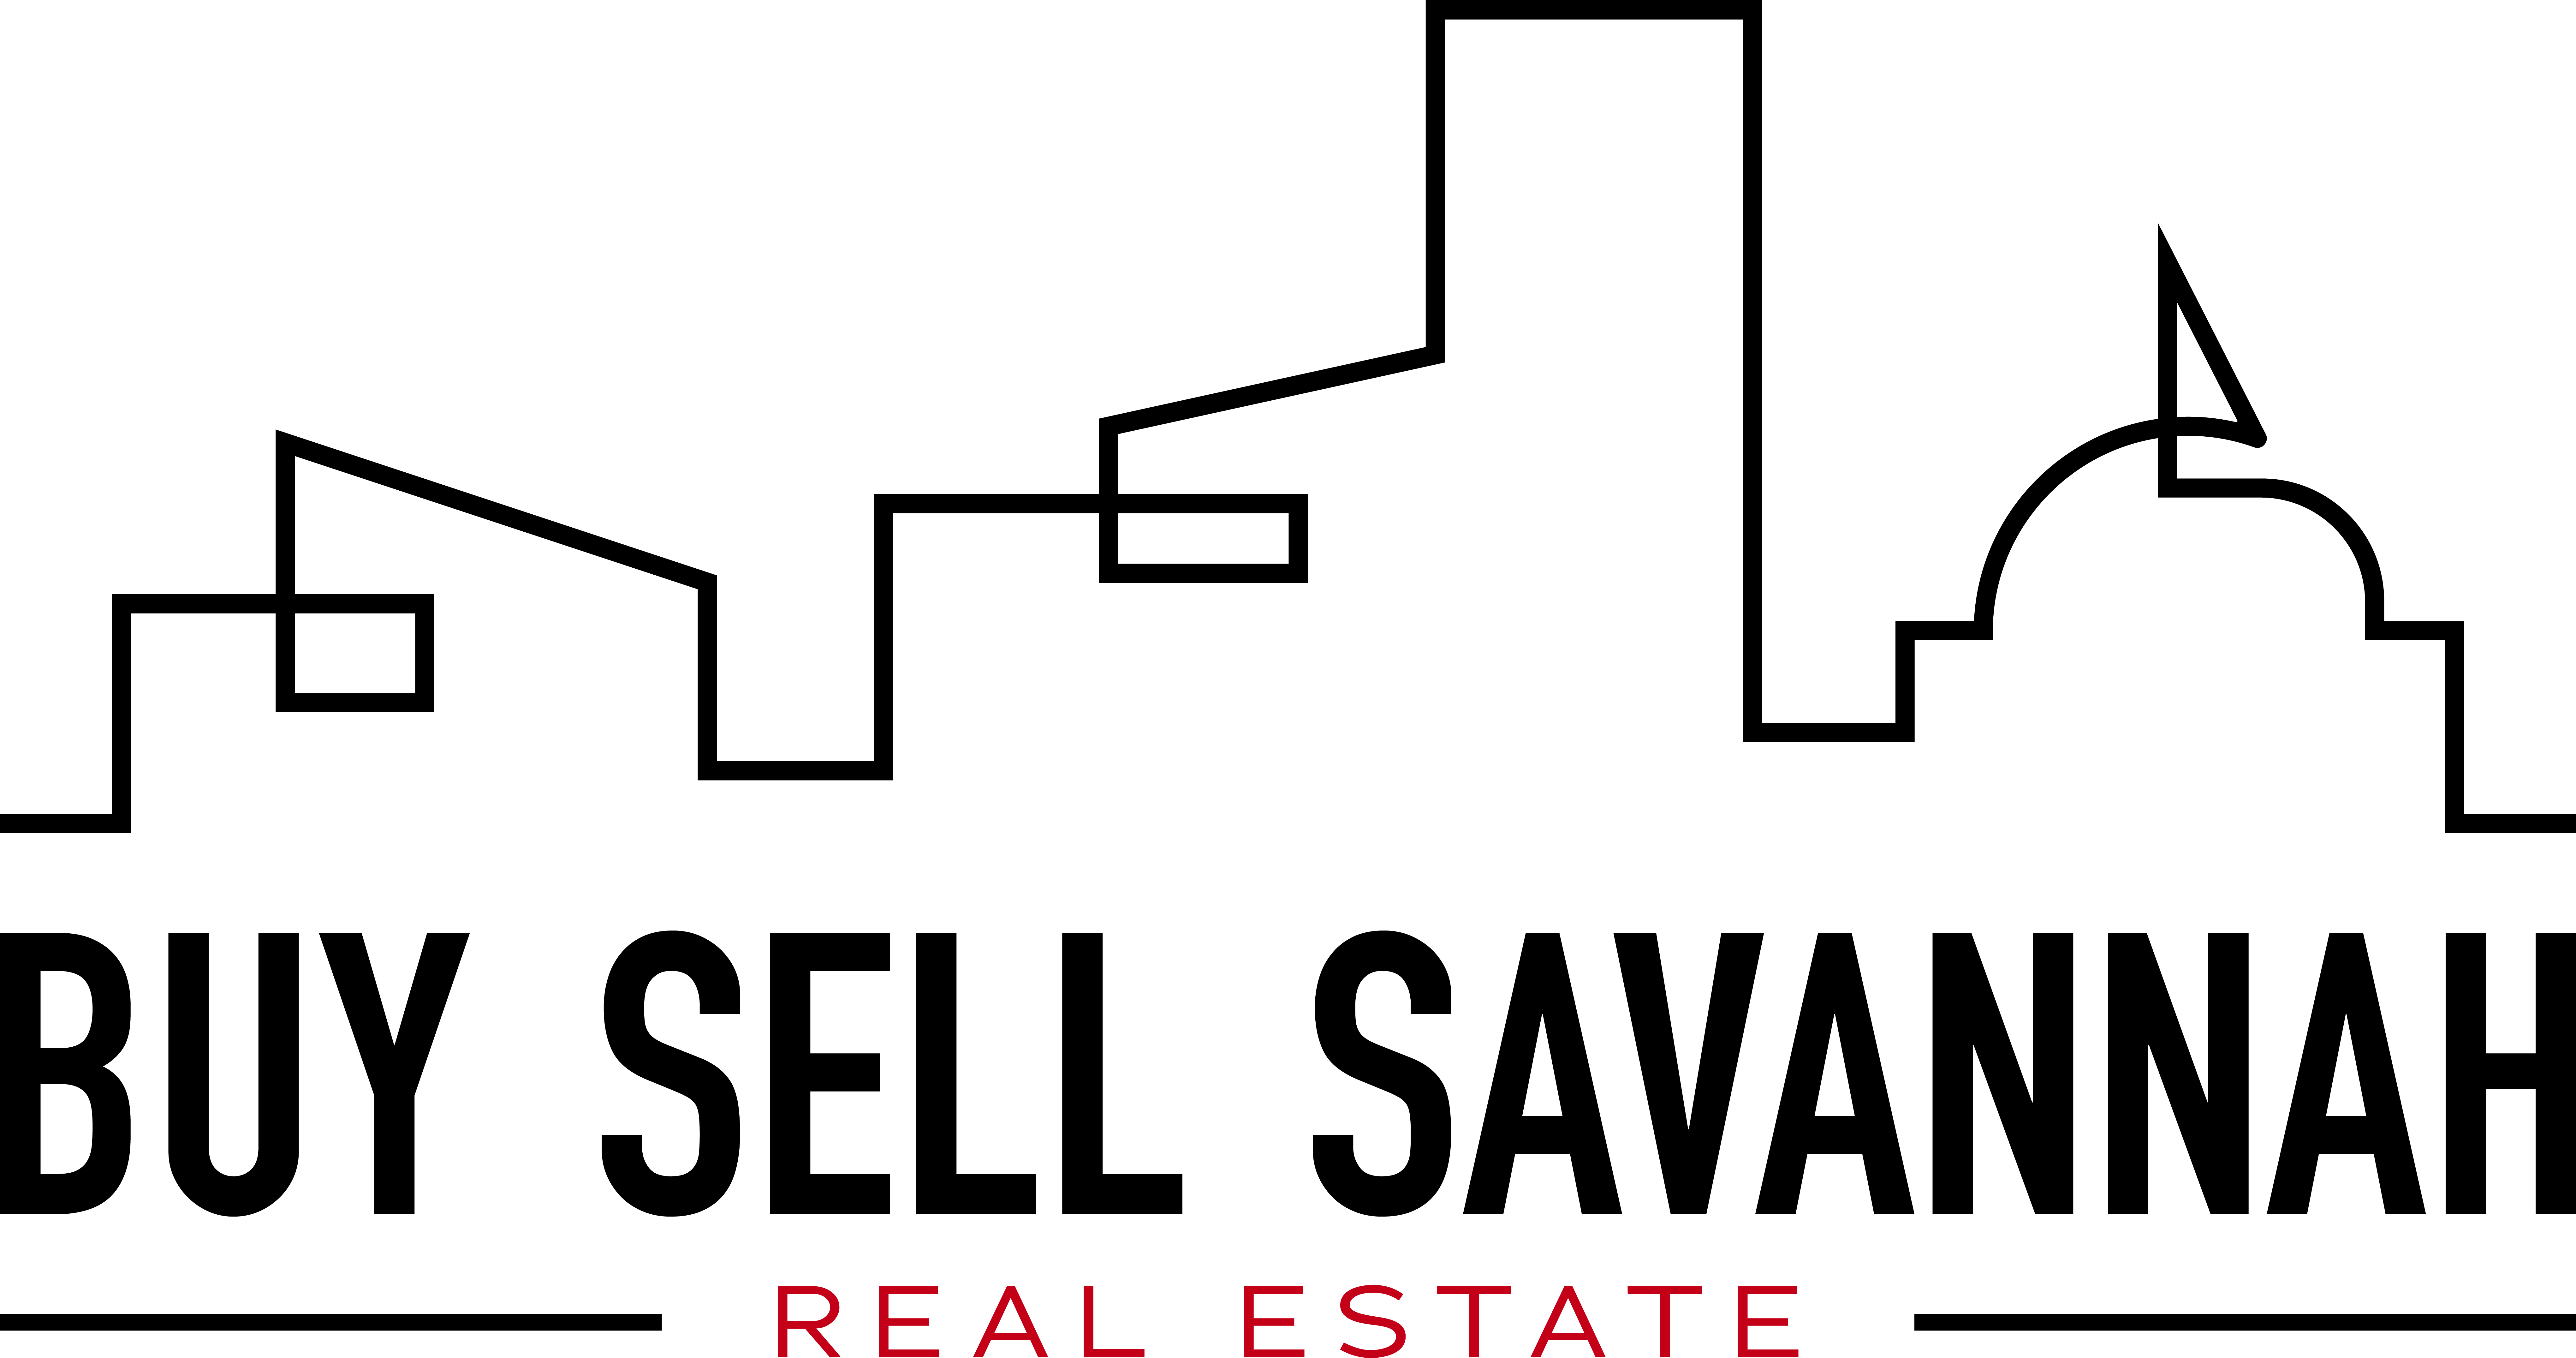 Buy Sell Savannah Real Estate